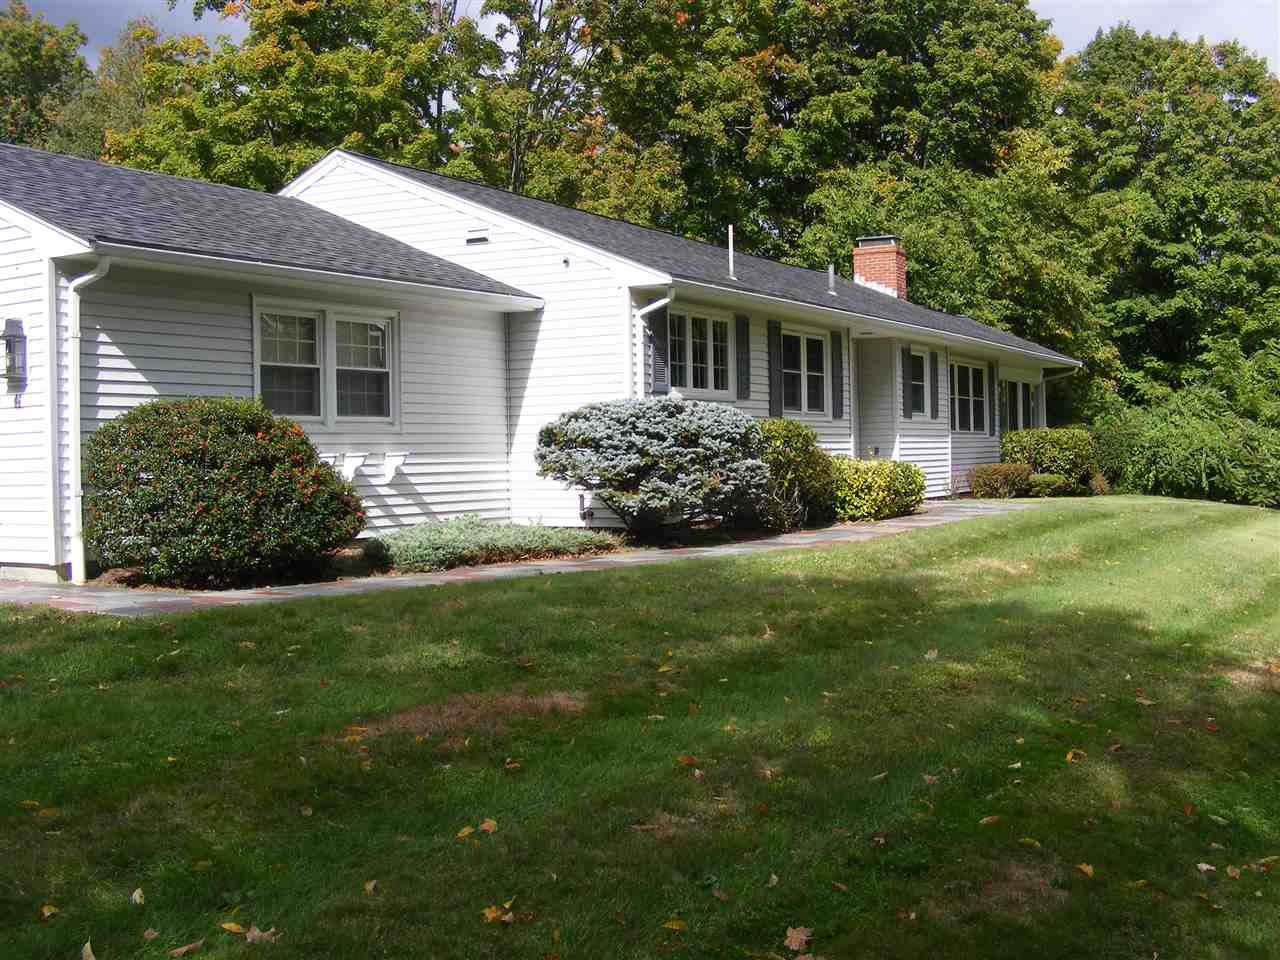 46 Maple Ave, Atkinson, NH 03811